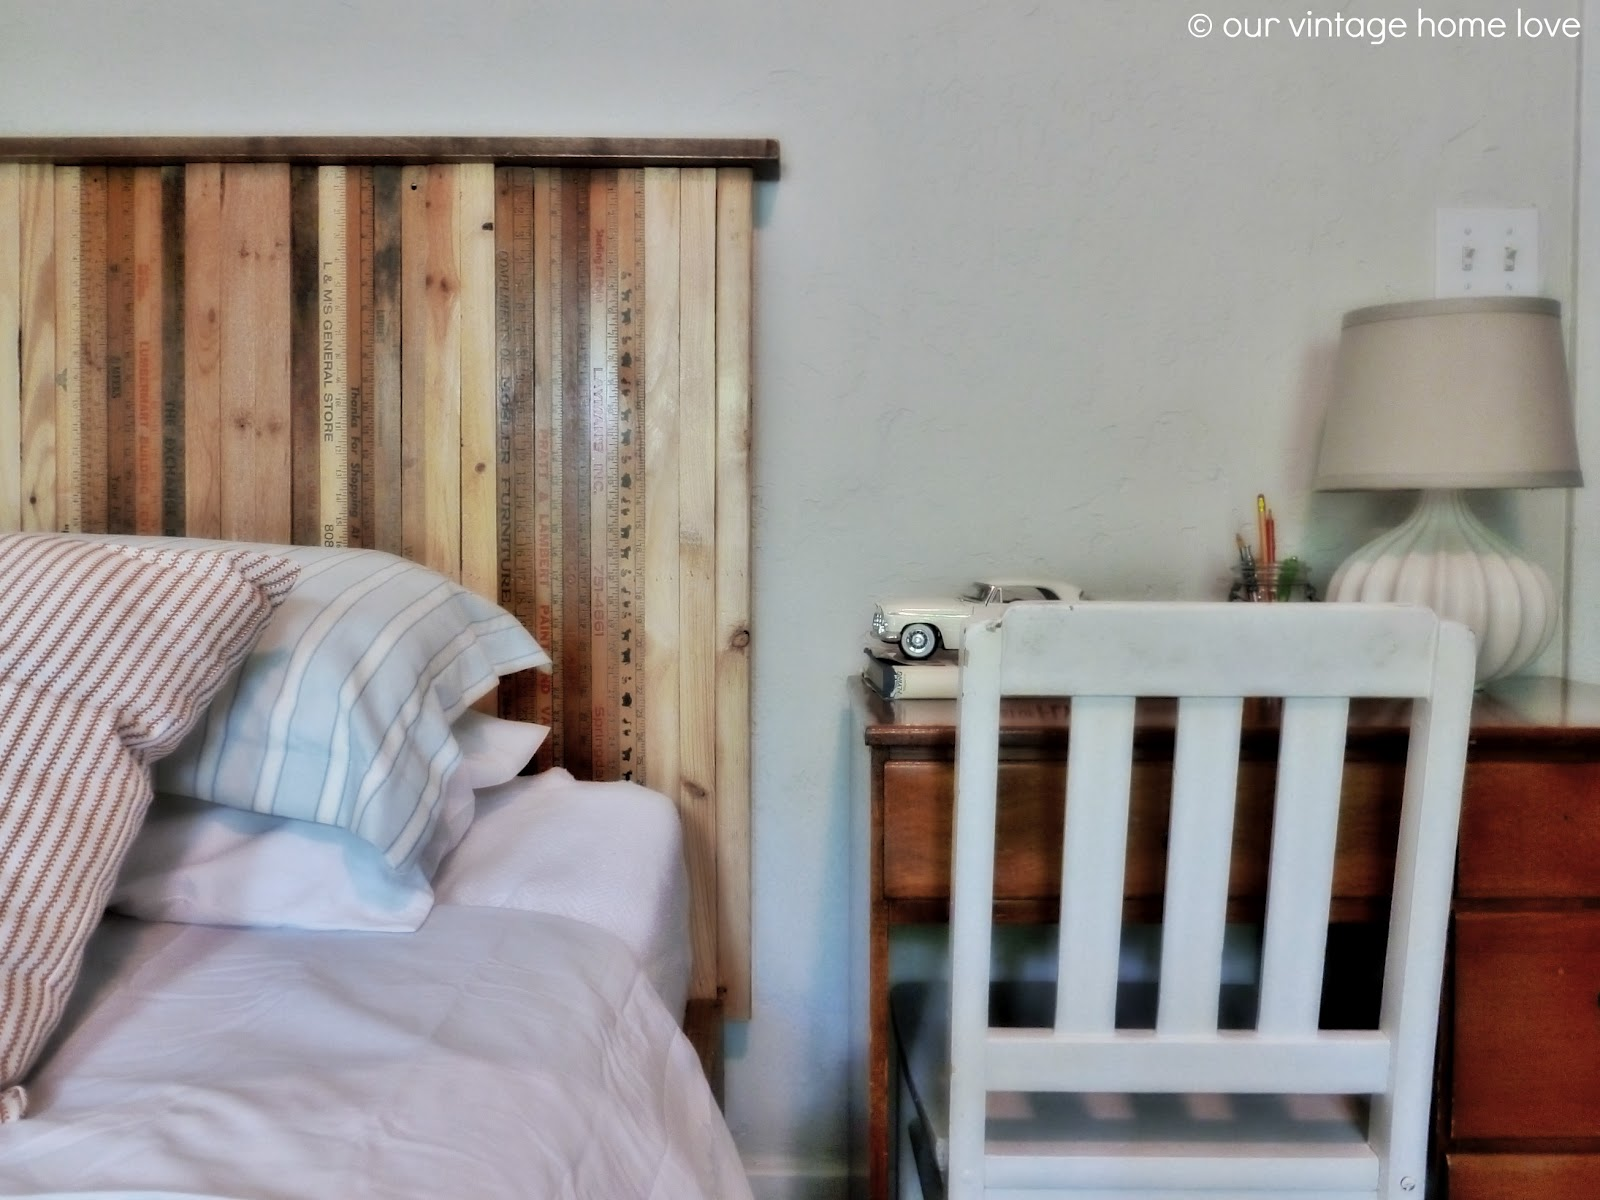 awesome bunk mattress frames inspiring wood ruffle where maddie wrought headboard and double trundle elegant buy make on beds bedroom katalog company metal how only iron hideaway full for size beautiful headboards box frame with spring girl twin bowles bed cheap included to queen white dark ikea